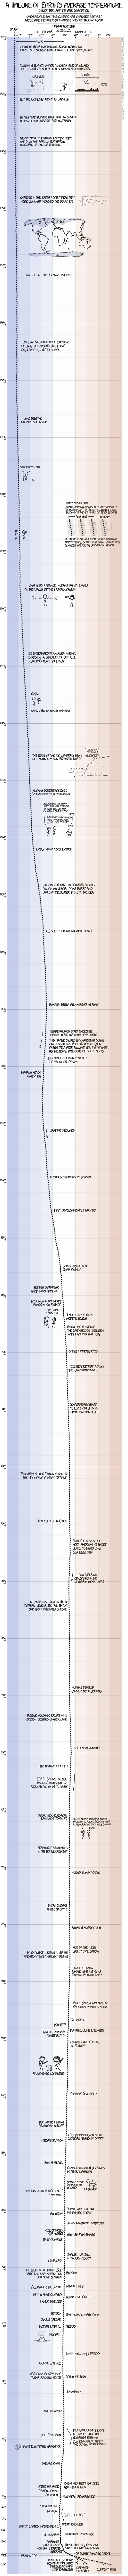 Earth's Temperature Over 22,000 Years